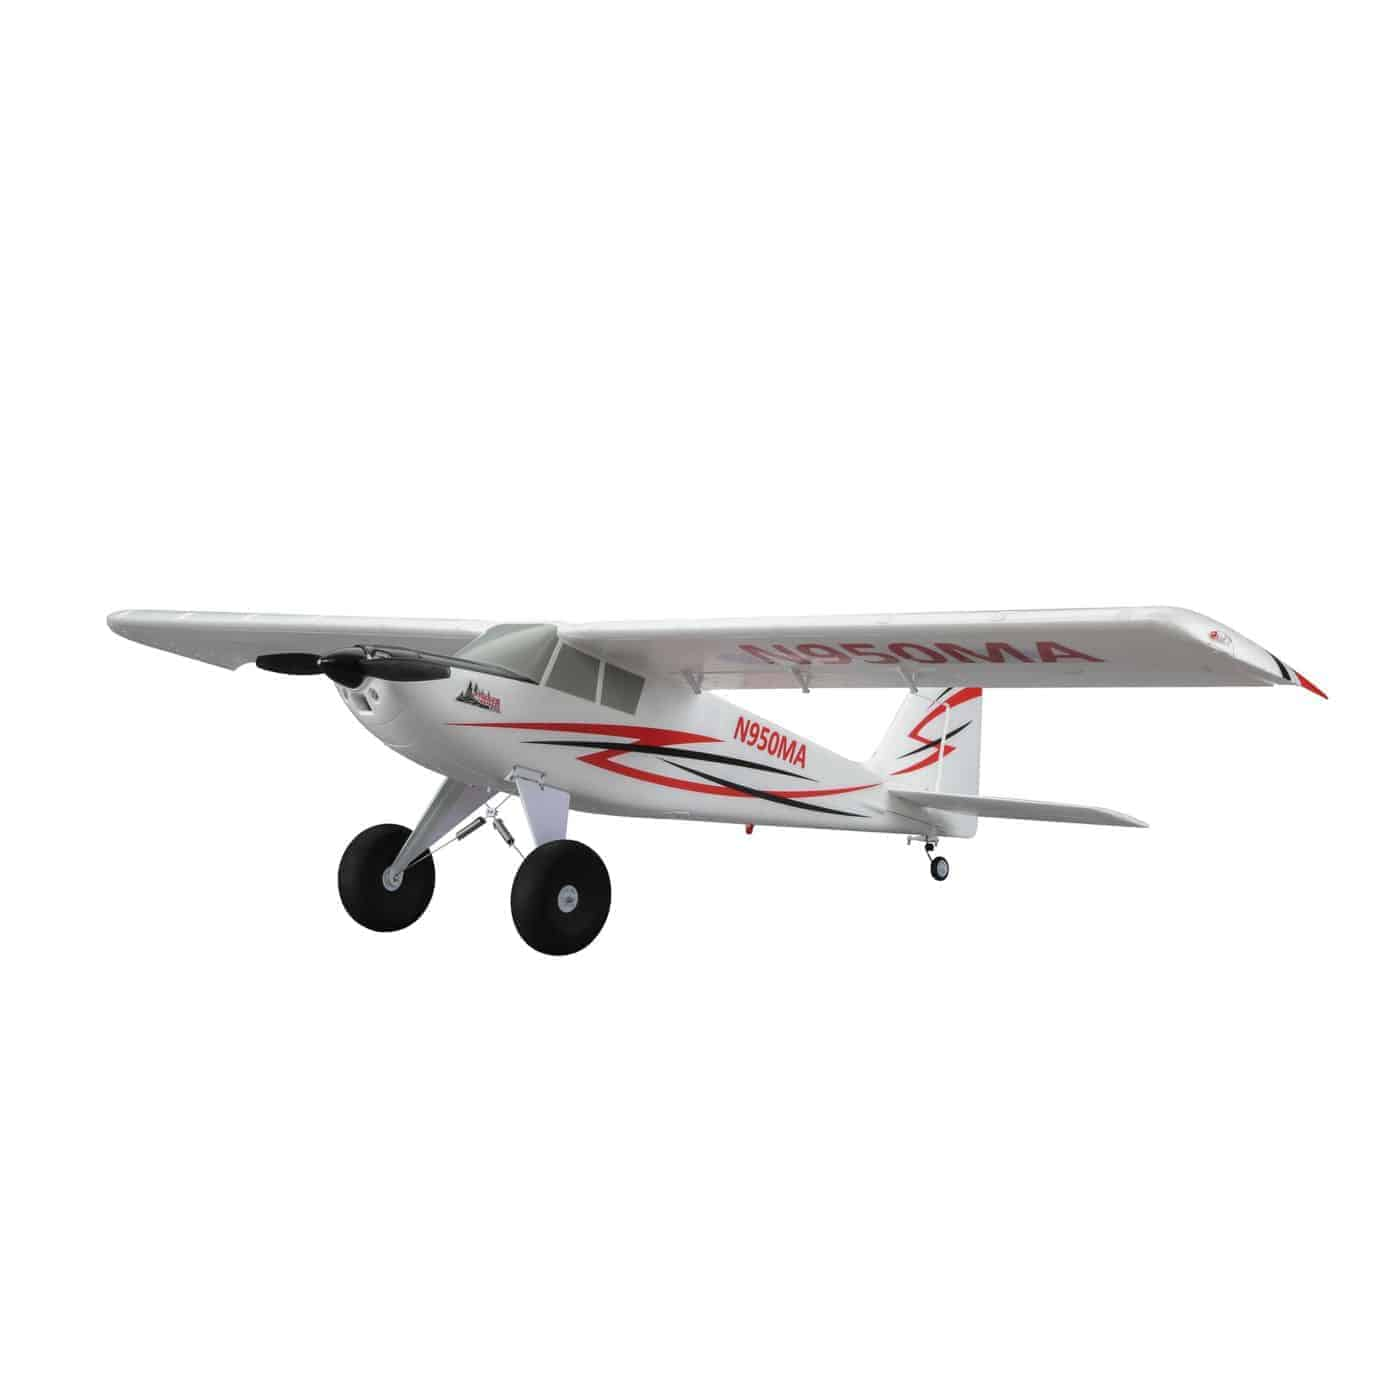 E-Flite Timber 1.5m PNP with Floats